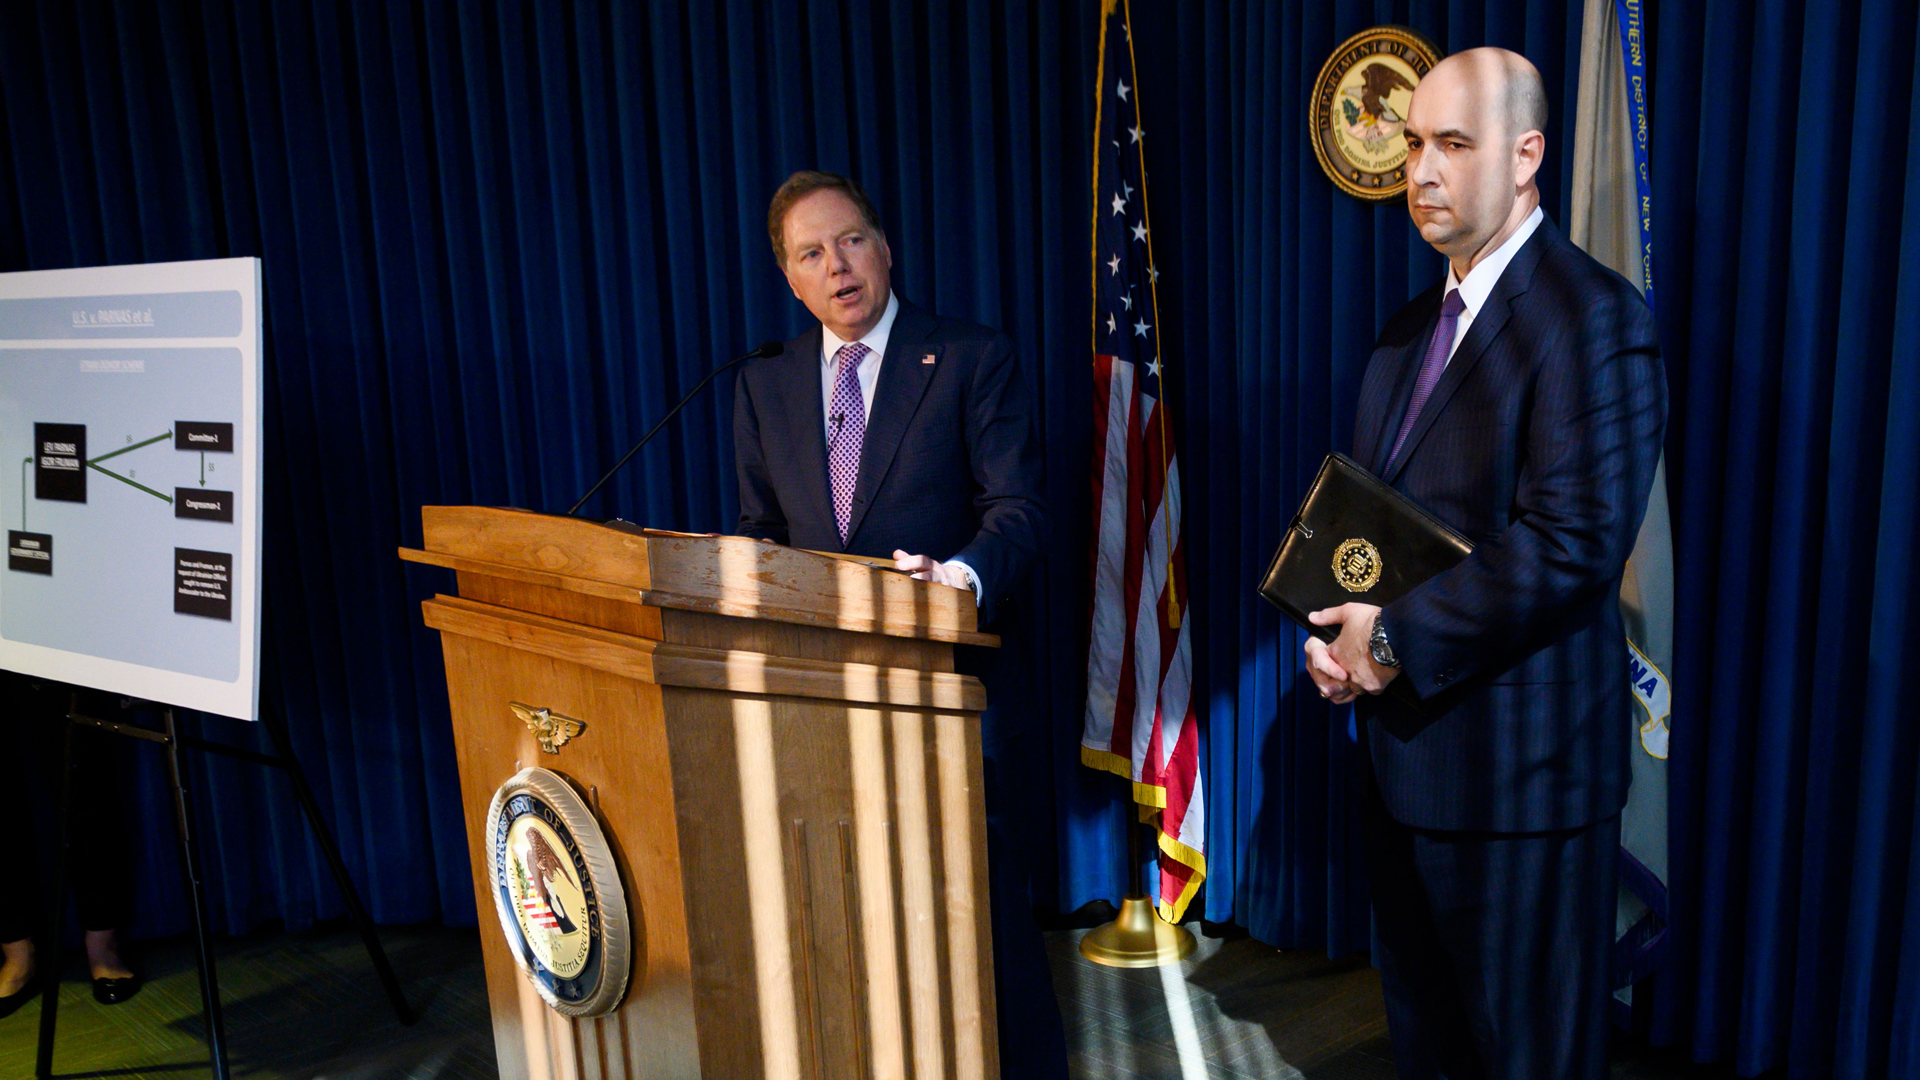 U.S. Attorney for the Southern District of New York Geoffrey Berman, with FBI New York Office Assistant Director-in-Charge, William Sweeney, speaks during a press conference Oct. 10, 2019 in New York City. Berman announced the indictment of Lev Parnas, Igor Fruman, David Correia, and Andrey Kukushnin for various charges related to two separate schemes in which the defendants allegedly conspired to violate U.S. federal election laws. (Credit: JOHANNES EISELE/AFP via Getty Images)